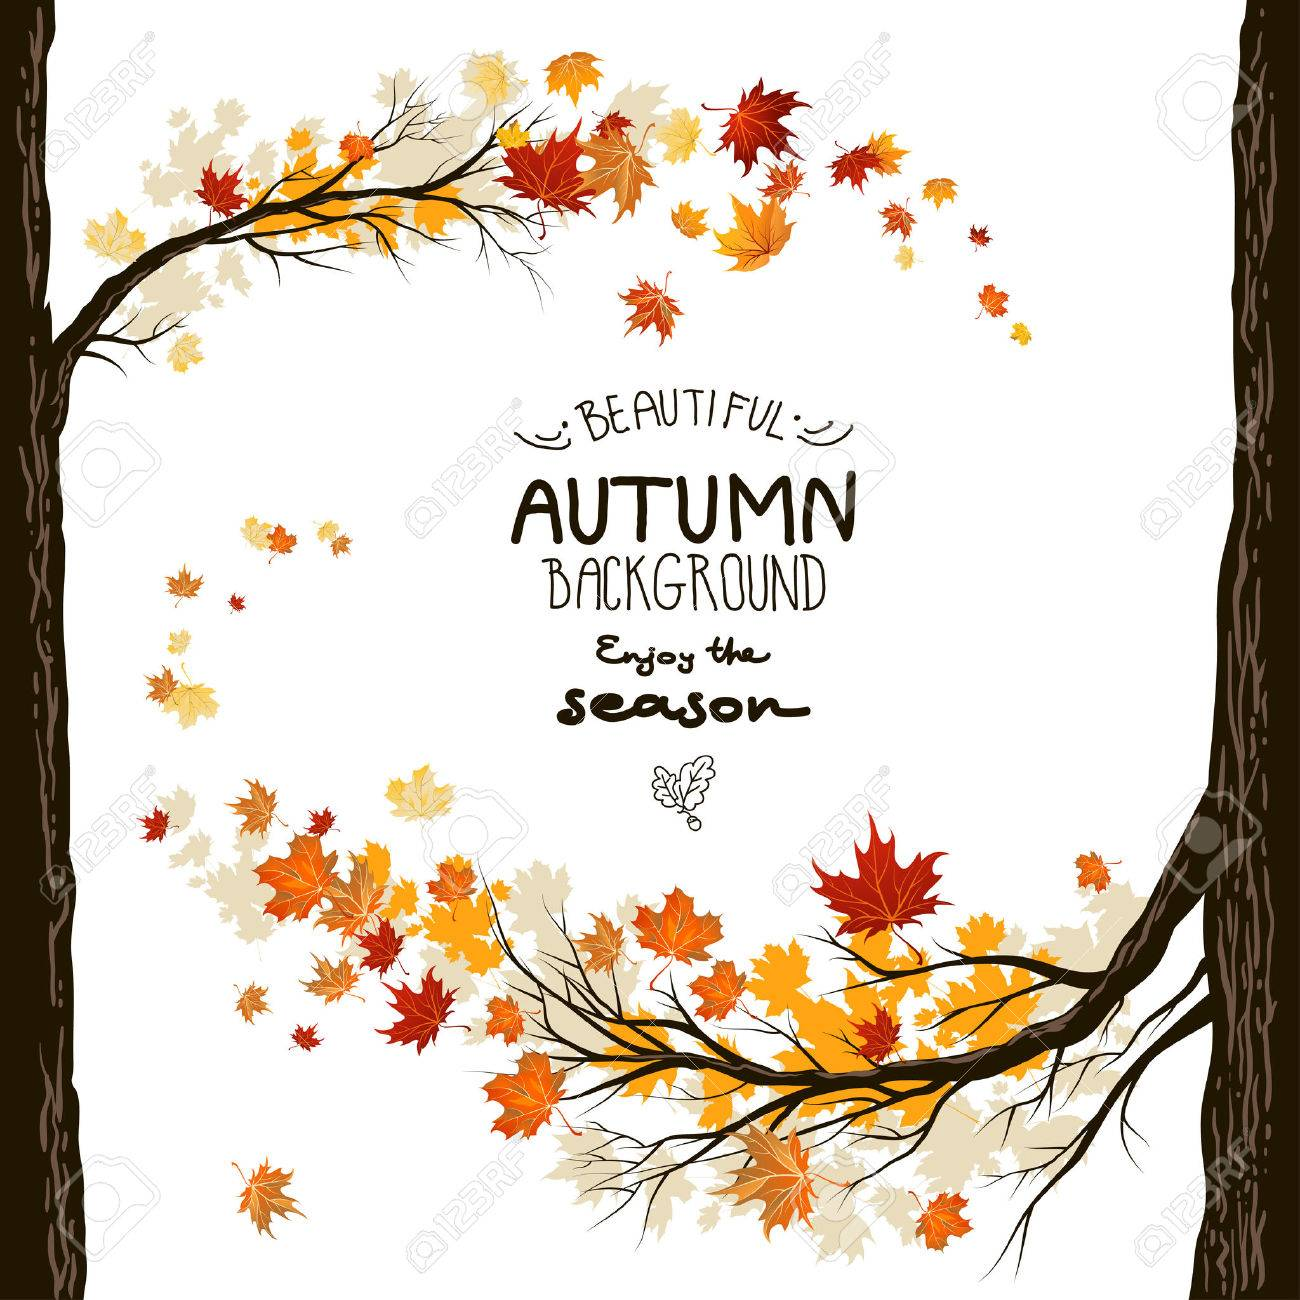 Fall background with leaves. Autumnal frame from trees - 32143233